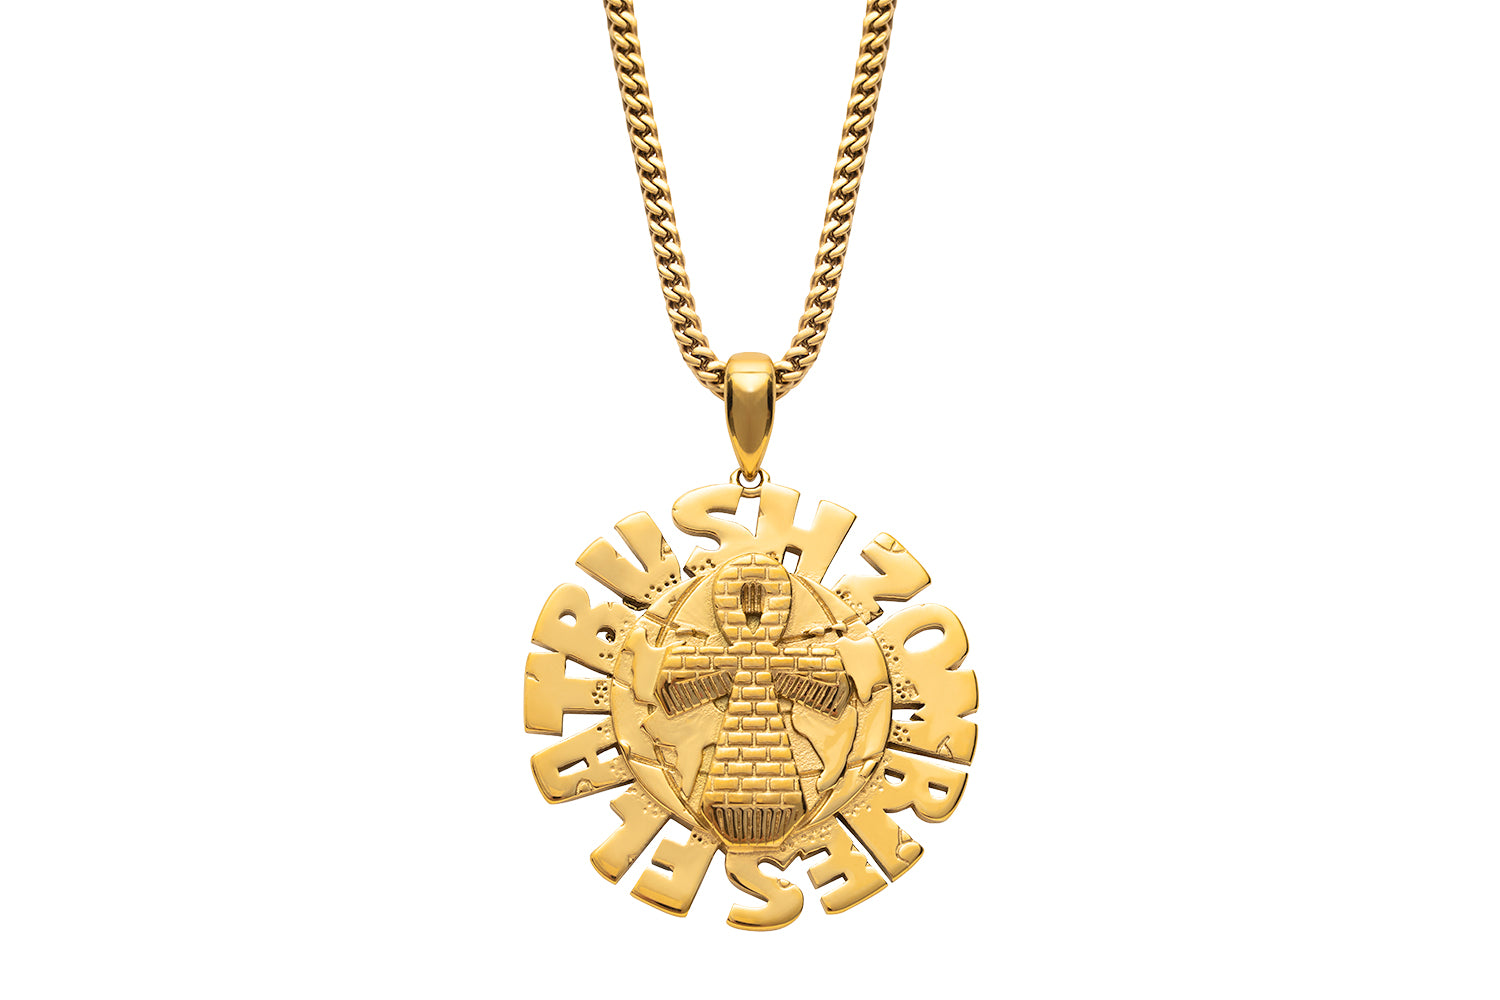 FBZ ANKH GLOBE PENDANT NECKLACE.